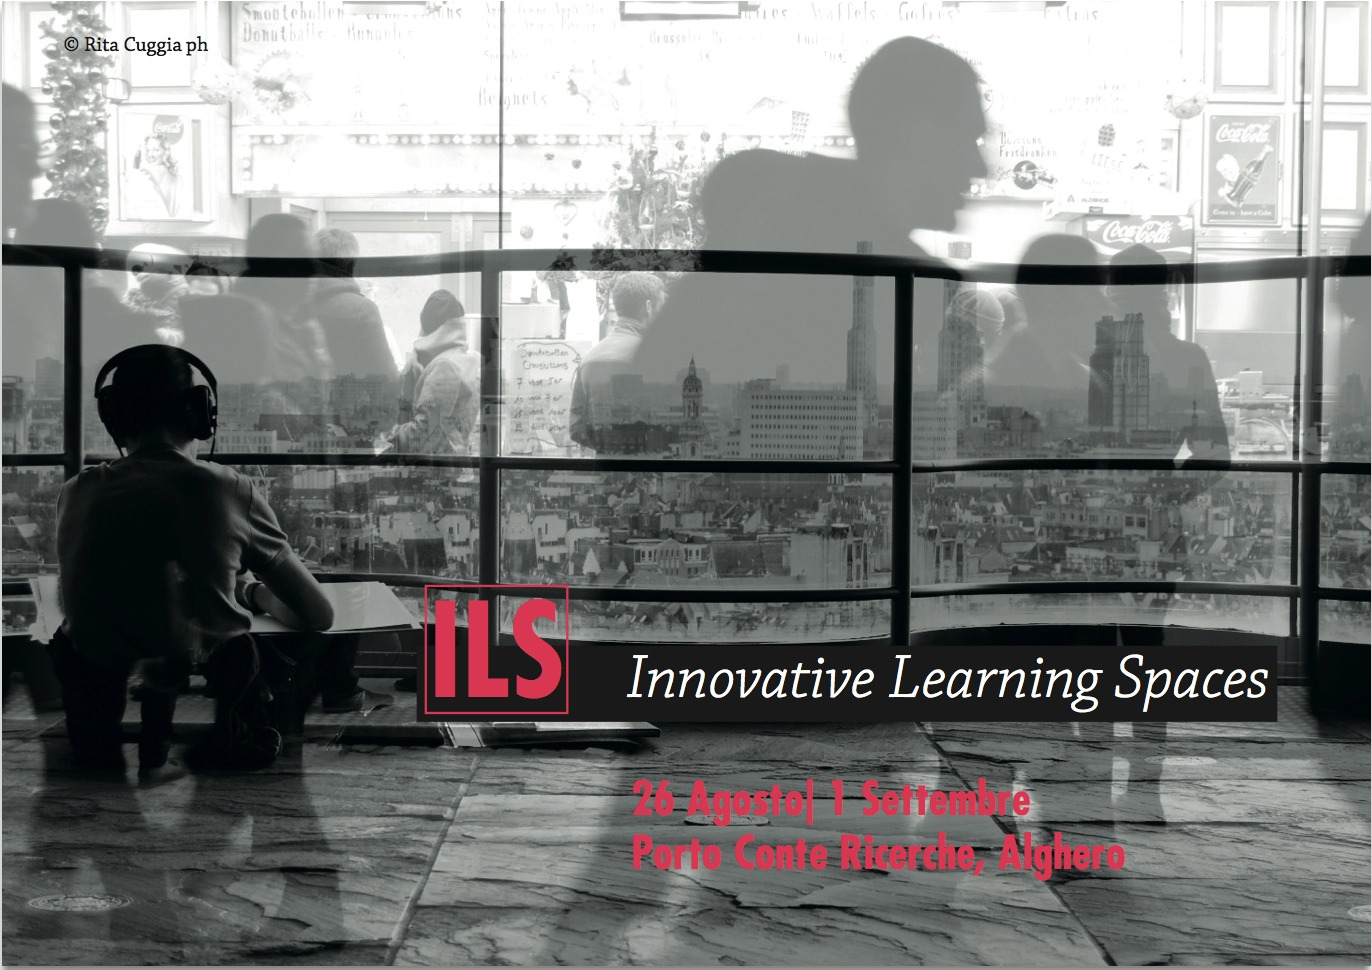 ILS Innovative Learning Spaces 2018